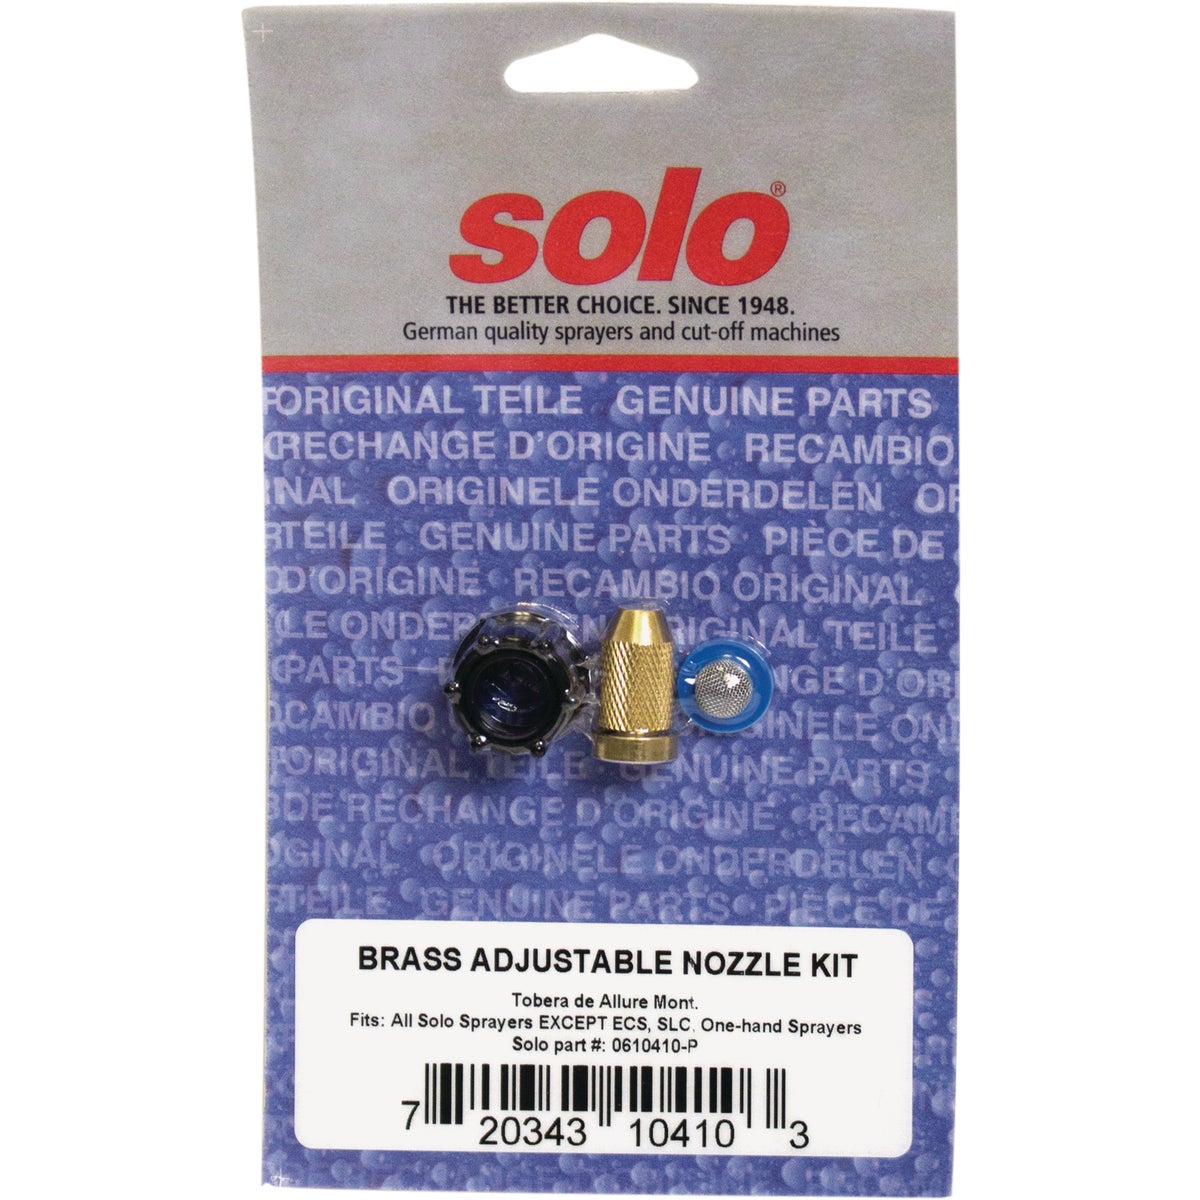 ADJ BRASS NOZZLE KIT - 0610410P by Solo Inc